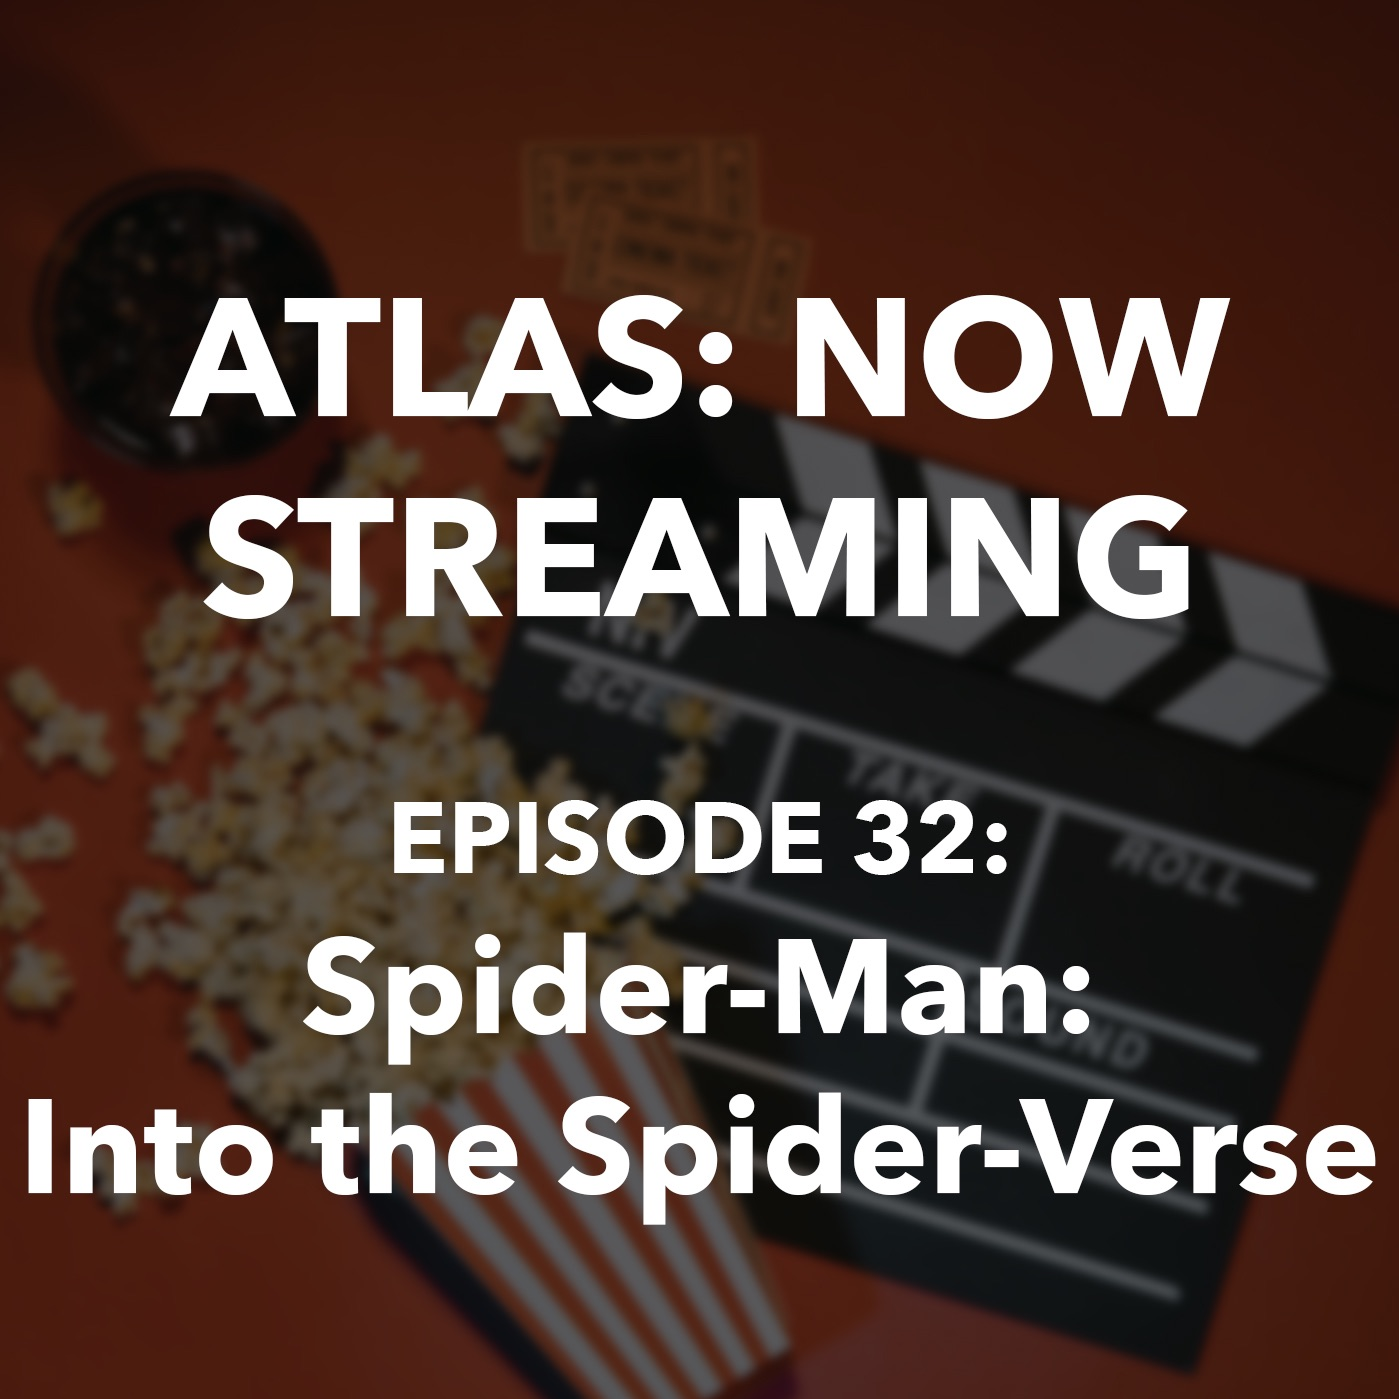 Spider-Man: Into the Spider-Verse - Atlas: Now Streaming Episode 32